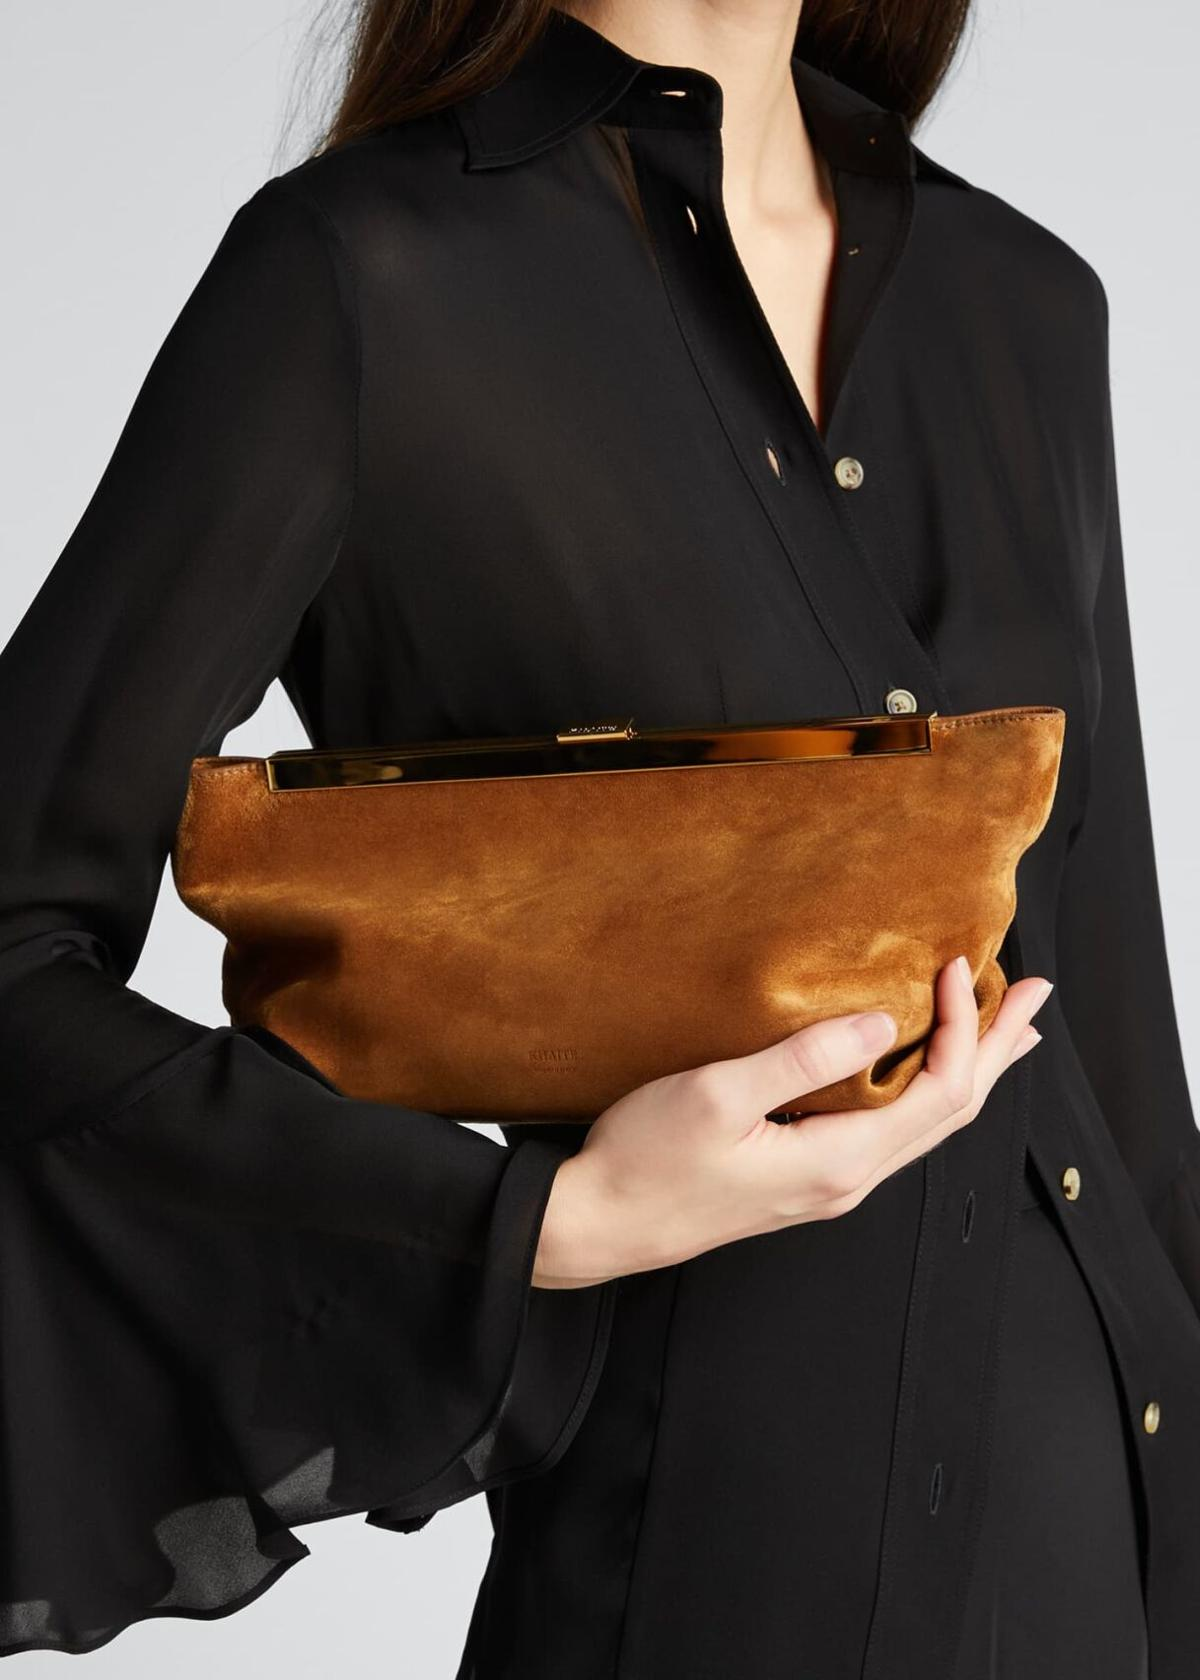 khaite-aimee-envelope-pleat-clutch- (2).jpeg